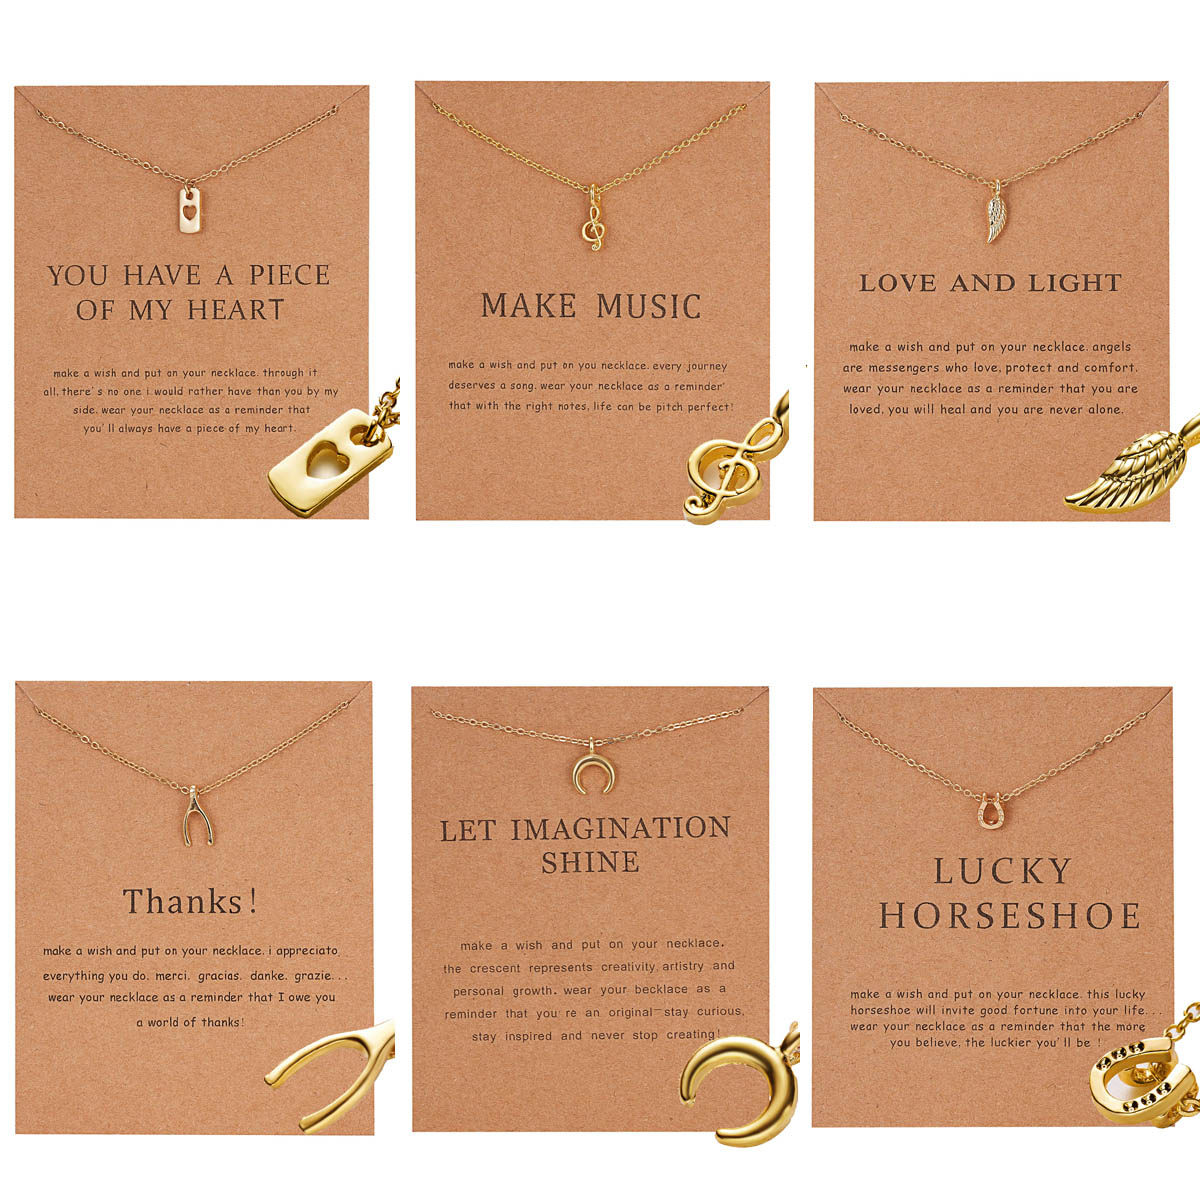 Hot Sale Sparkling Luck Bowknot Pendant necklace gold-color Clavicle Chains  Statement Necklace Women Jewelry(Has card)